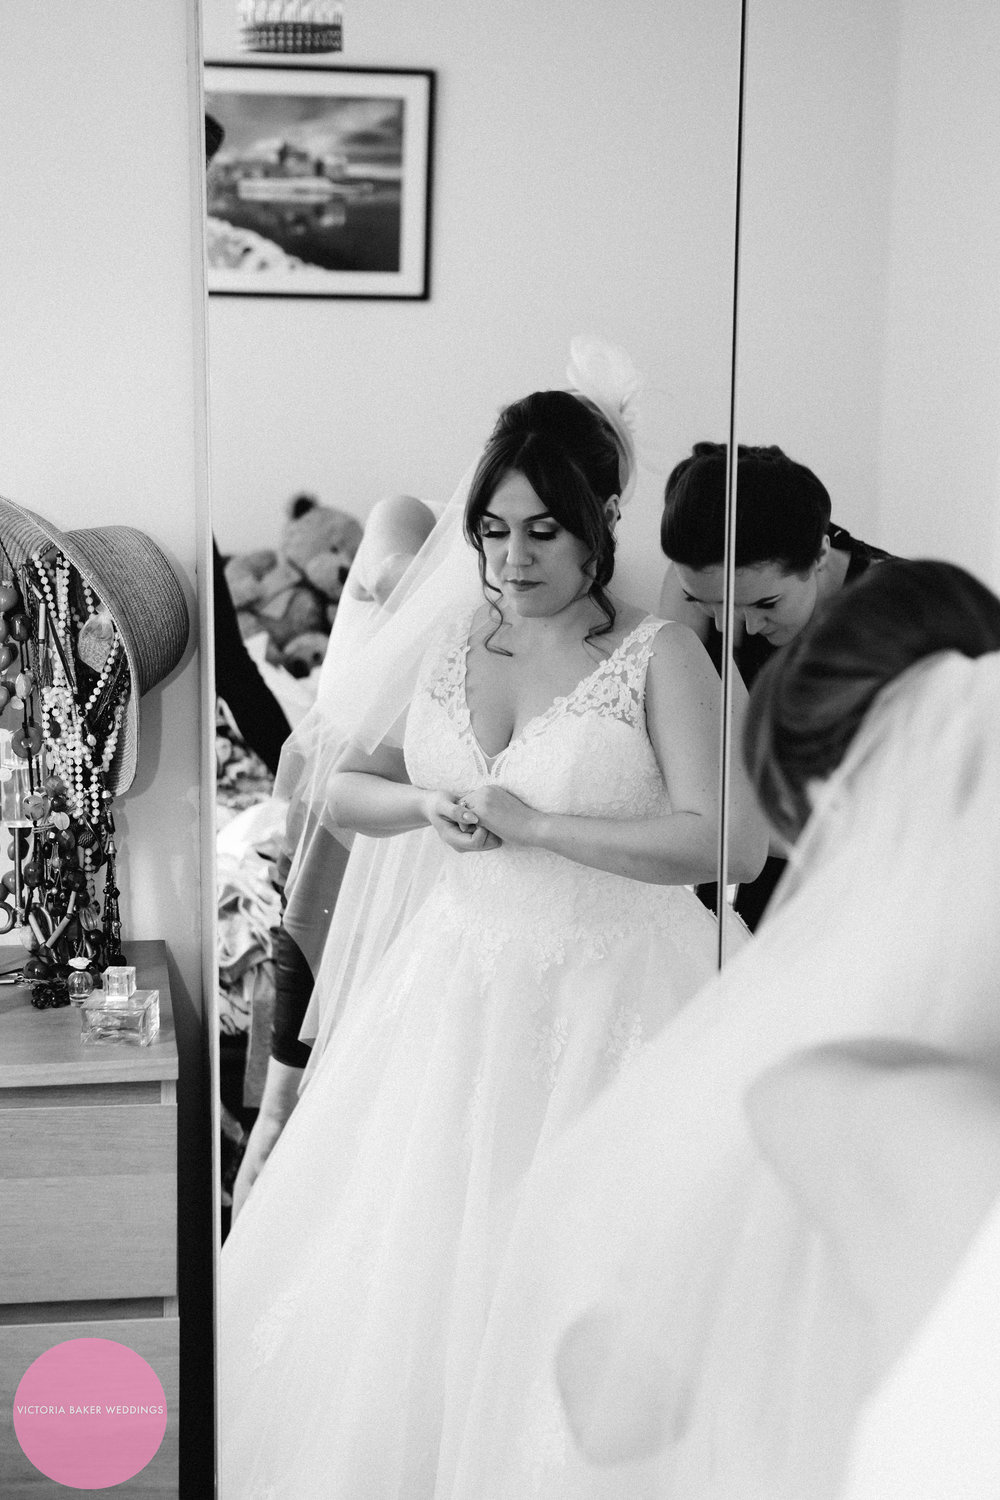 Bride getting ready | Creative wedding photography Leeds